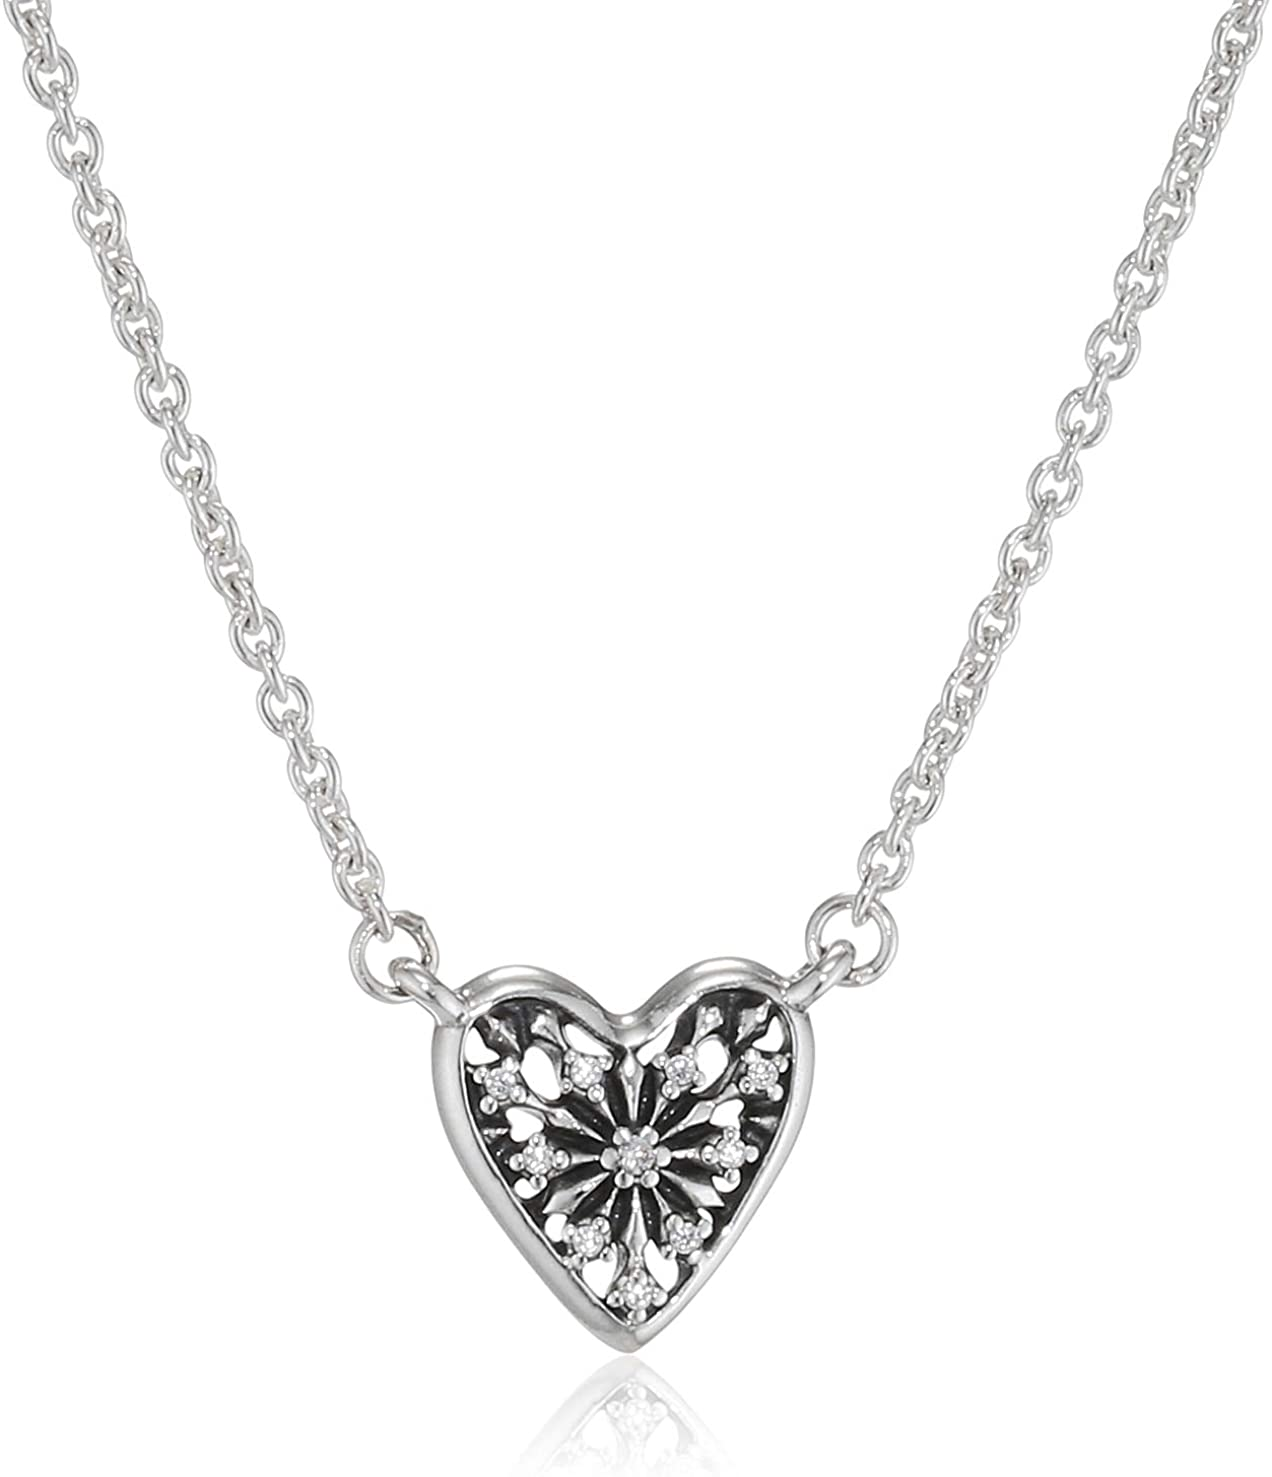 pandora necklace with heart